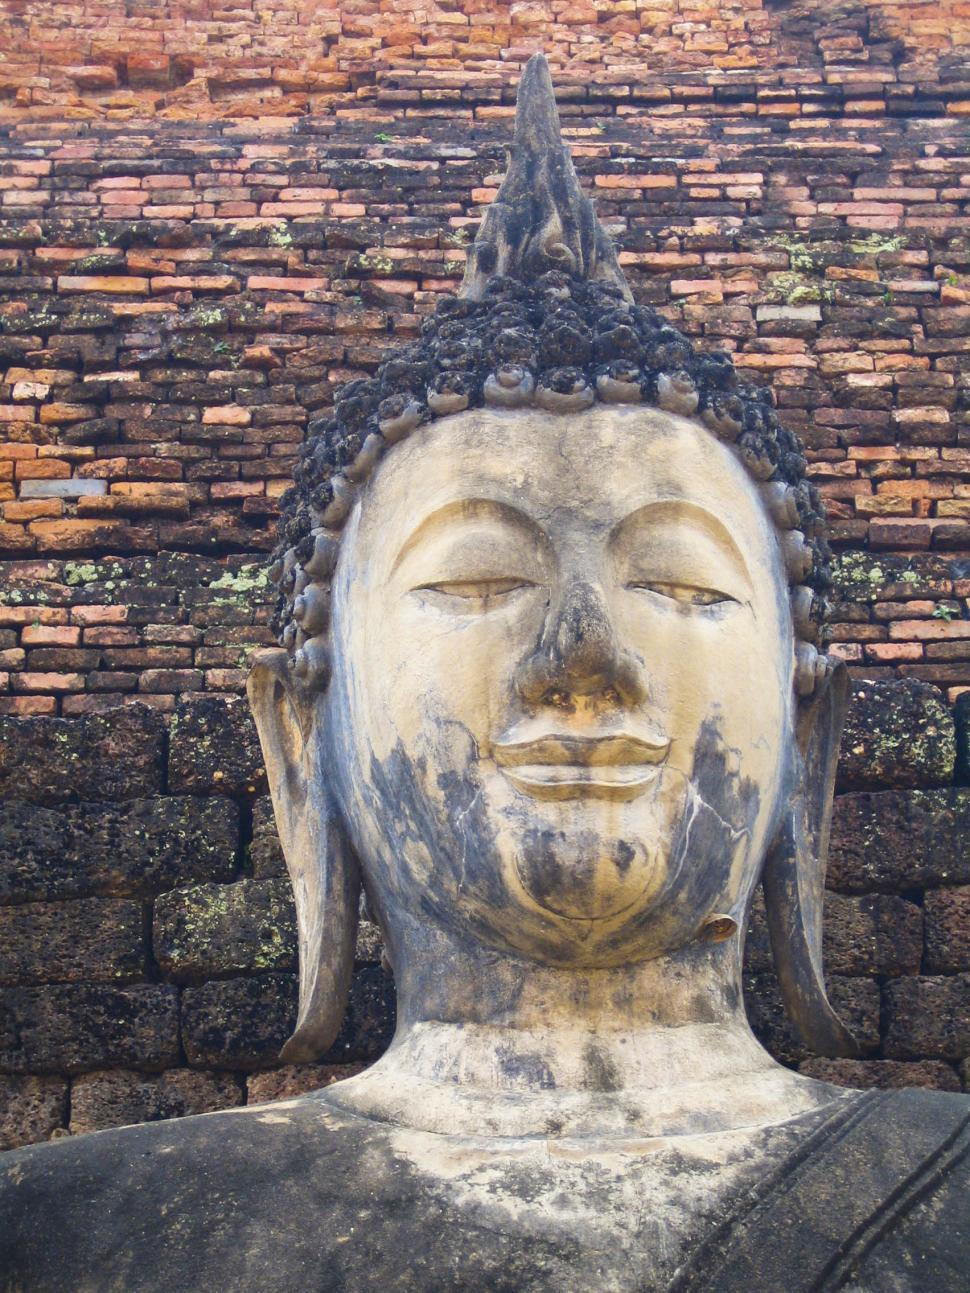 Download Free Stock HD Photo of buddah face Online